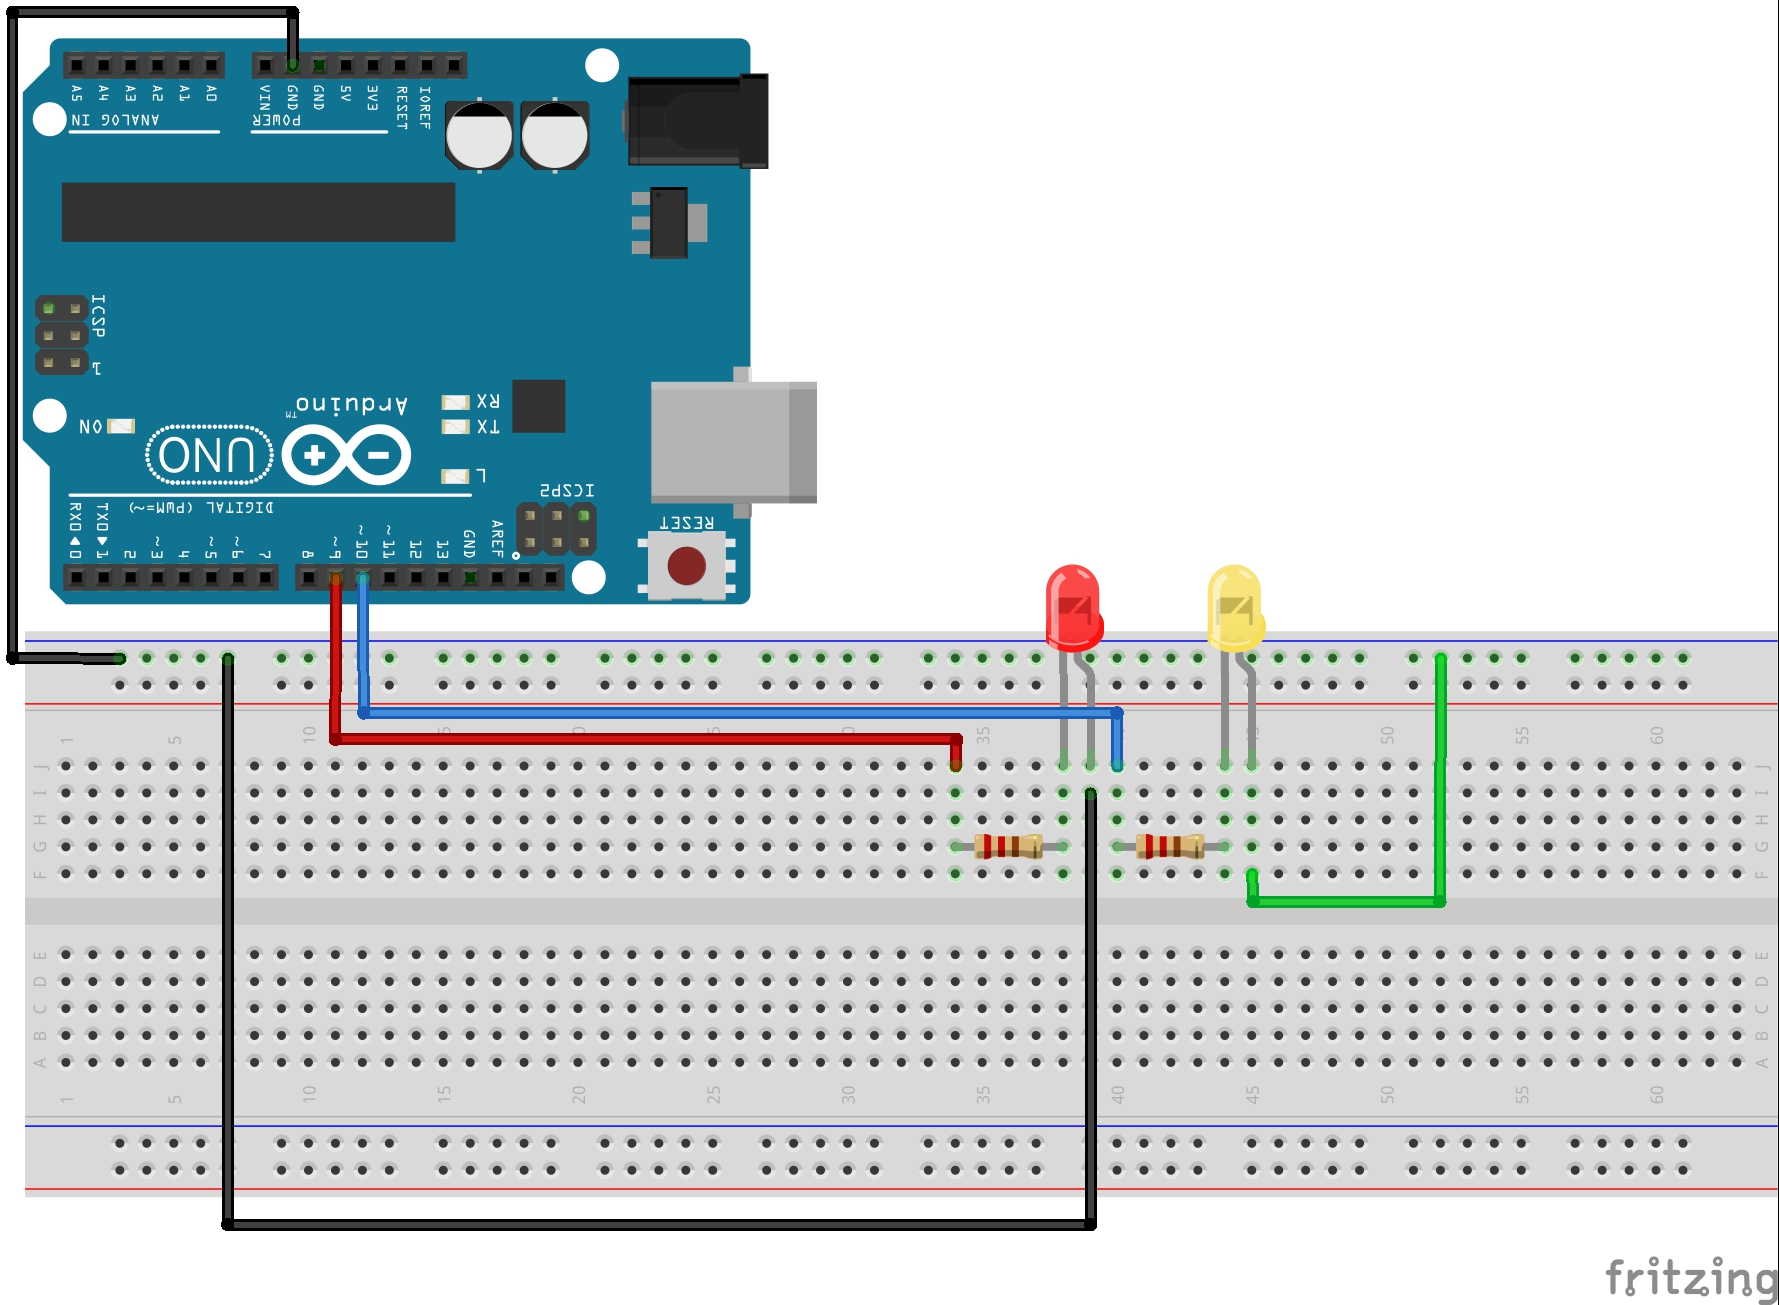 Two LED Schematic | Technology Tutorials Led Schematic on led arduino code, windscreen wiper, strobe light, integrated circuit, led power, led pspice, led symbol, led component, led circuit, led layout, plasma display, led driver, laser diode, liquid crystal display, led display, led polarity, led board, incandescent light bulb, led wire, led wiring, solid-state lighting, led pictorial, thermal management of high-power leds, christmas lighting technology, led street light, led signs, led lamp, led breadboard, led timeline, led pinout, led diagram, black light, led datasheet,